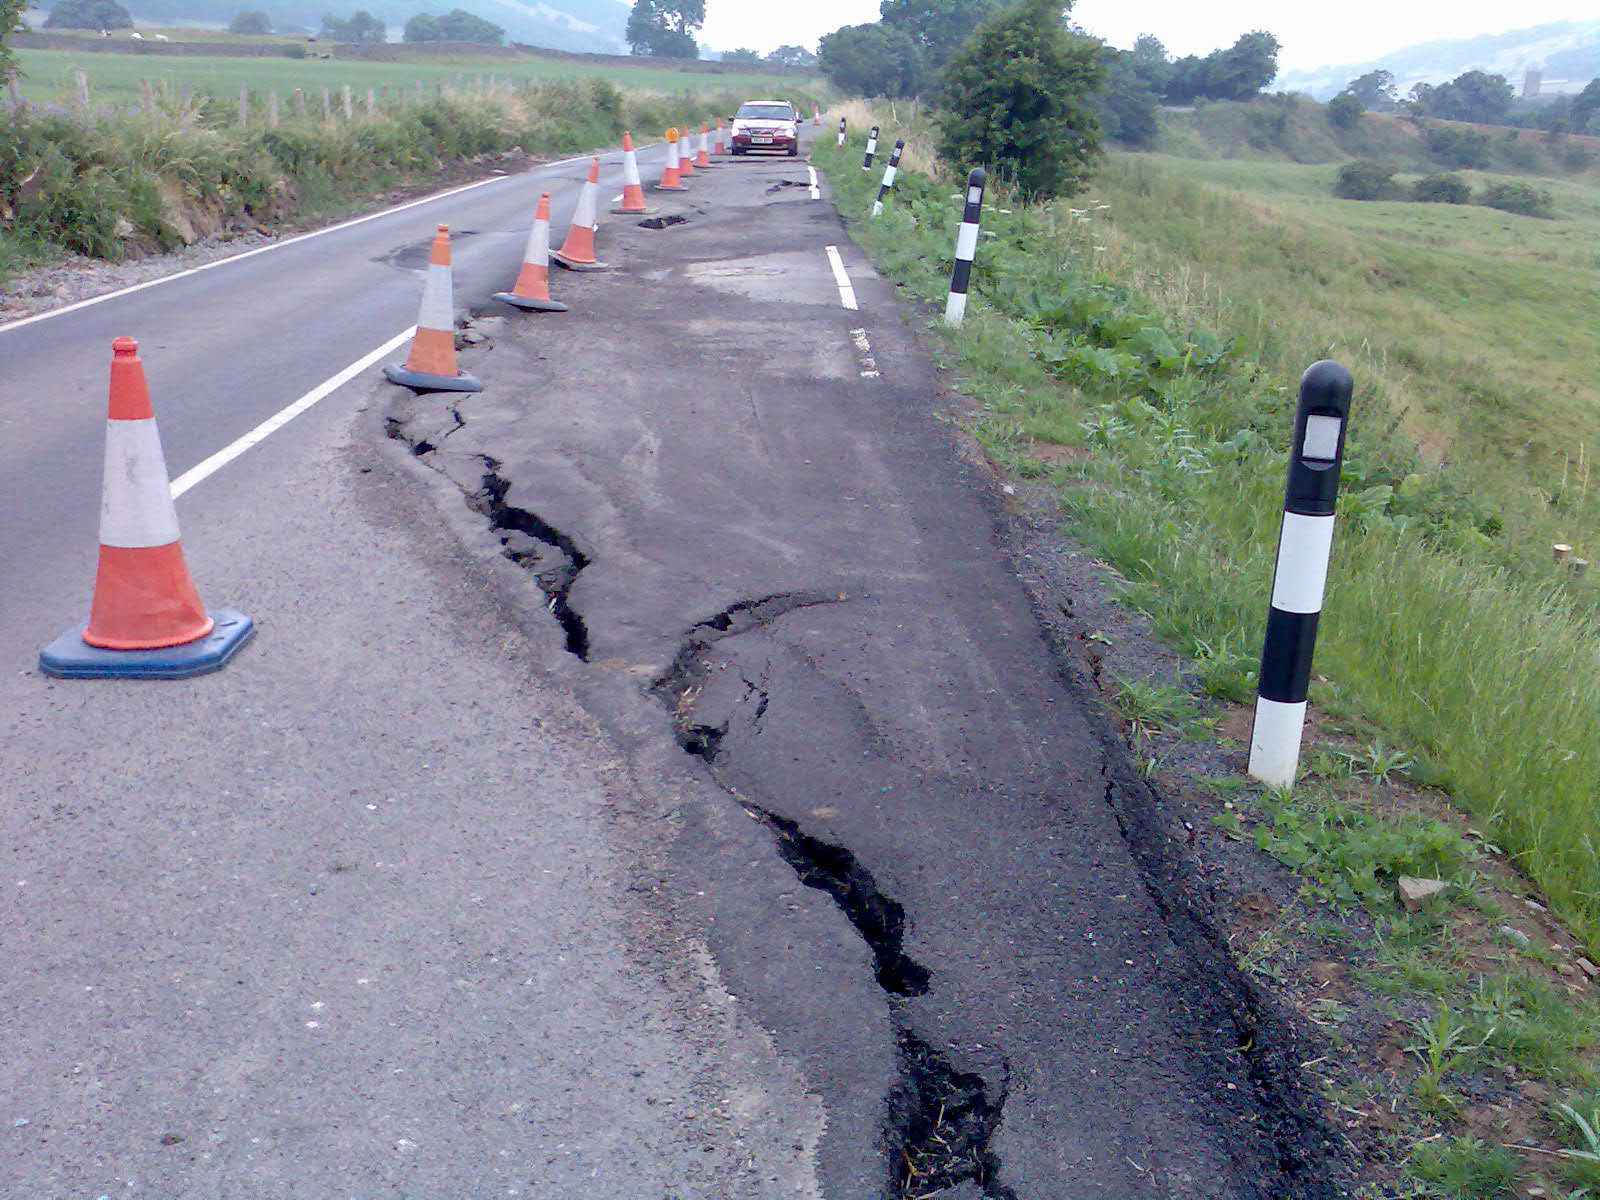 Part of the road between Reeth and Richmond to be repaired